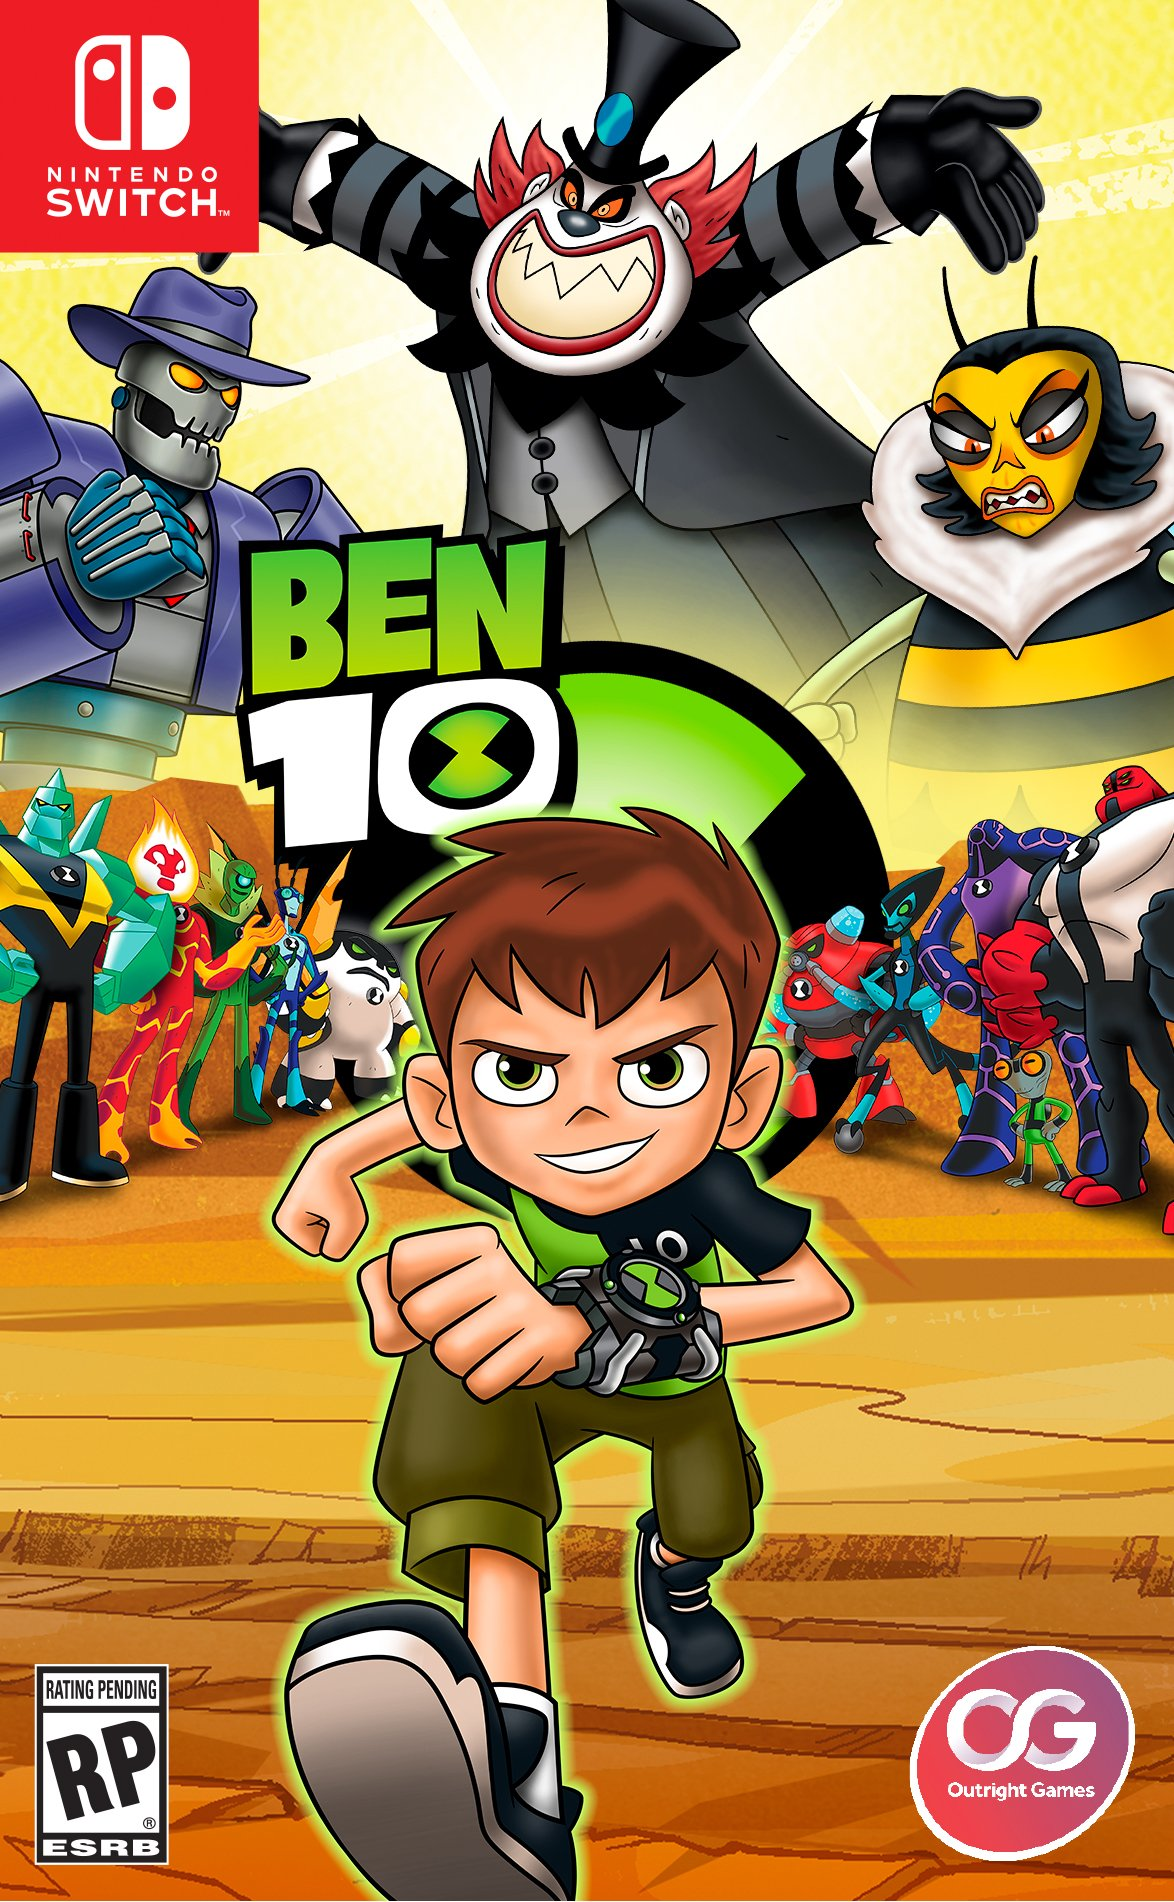 ben 10 outright games torus games coming to switch ps4 xbo at retail in q4 2017 neogaf. Black Bedroom Furniture Sets. Home Design Ideas